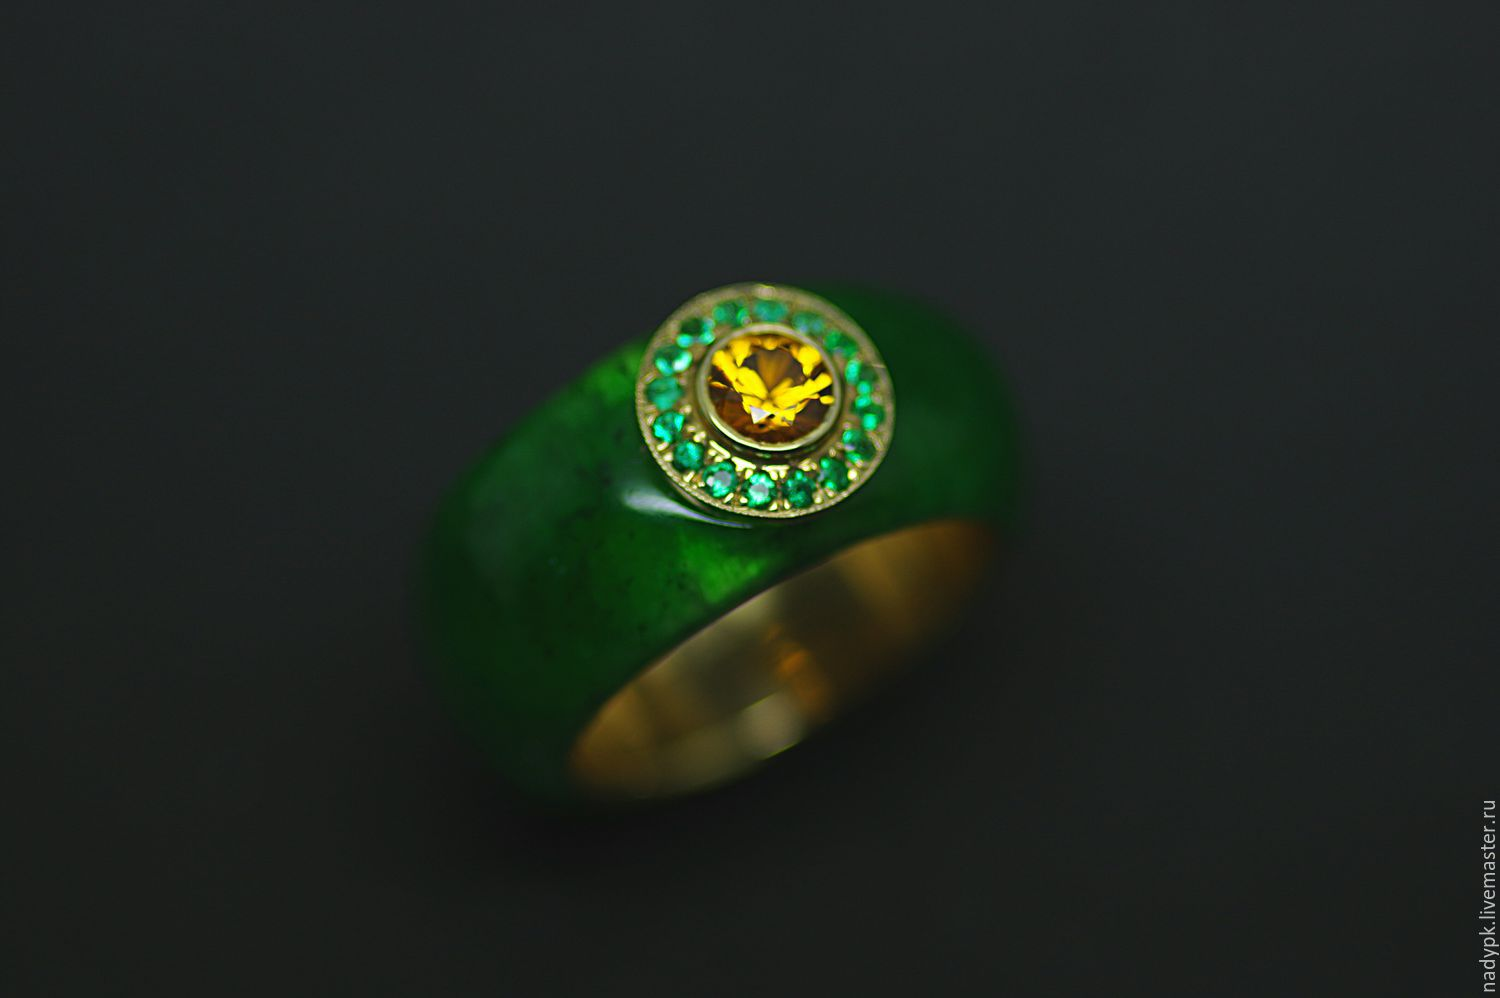 Ring of stone 'Pharaoh', sapphire, emeralds, gold 585, Rings, Moscow,  Фото №1